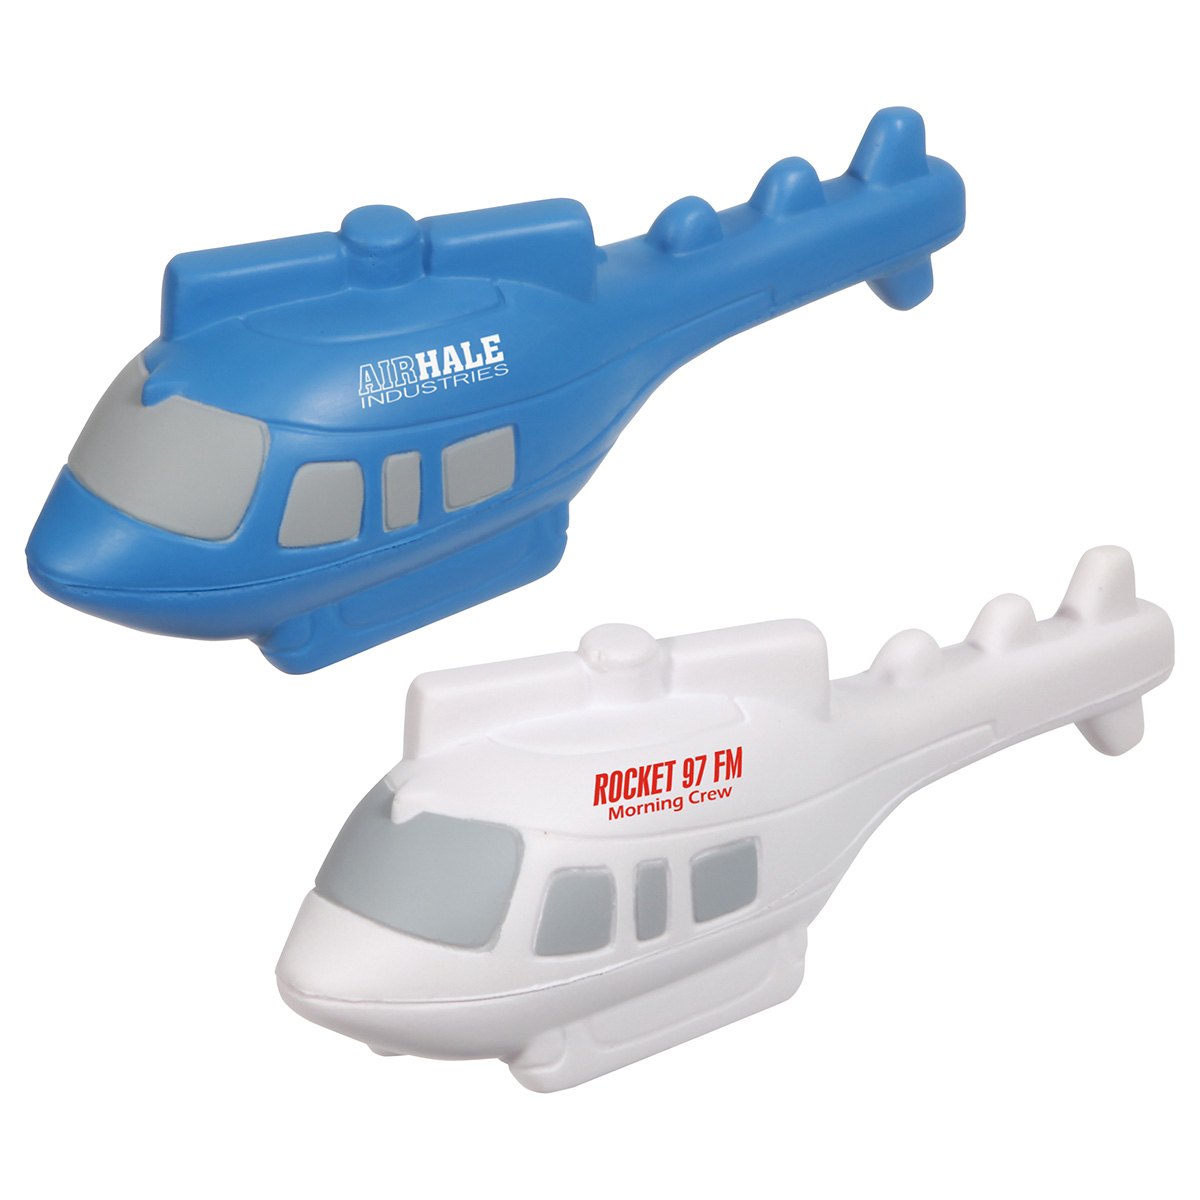 Helicopter Stress Reliever, LAR-HE36, 1 Colour Imprint